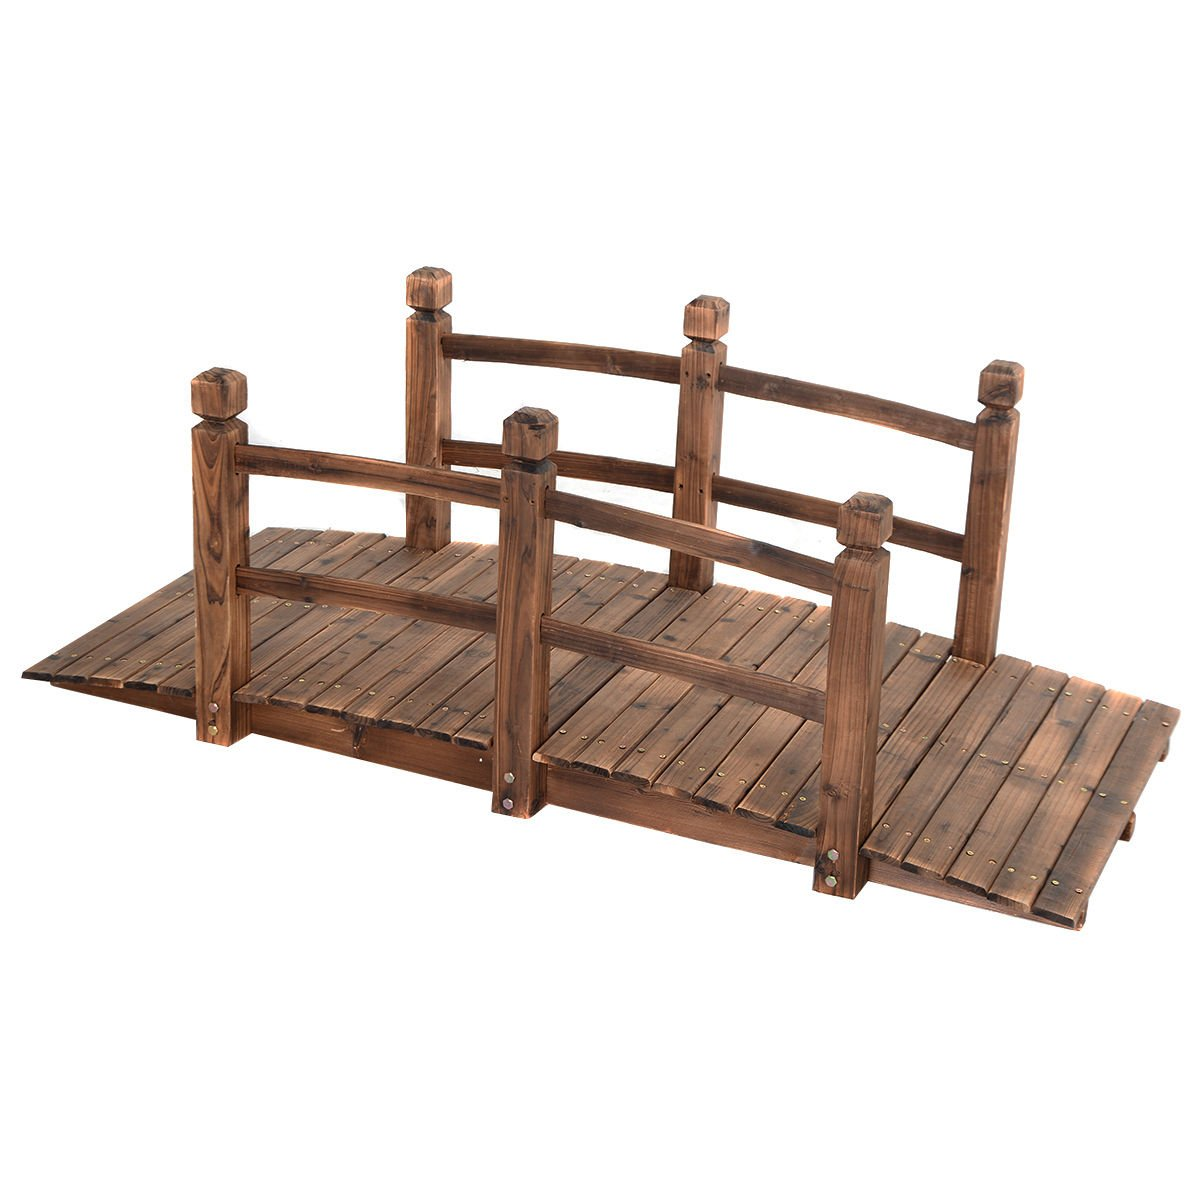 Amazoncom Garden Bridges Patio Lawn Garden - Garden bridges